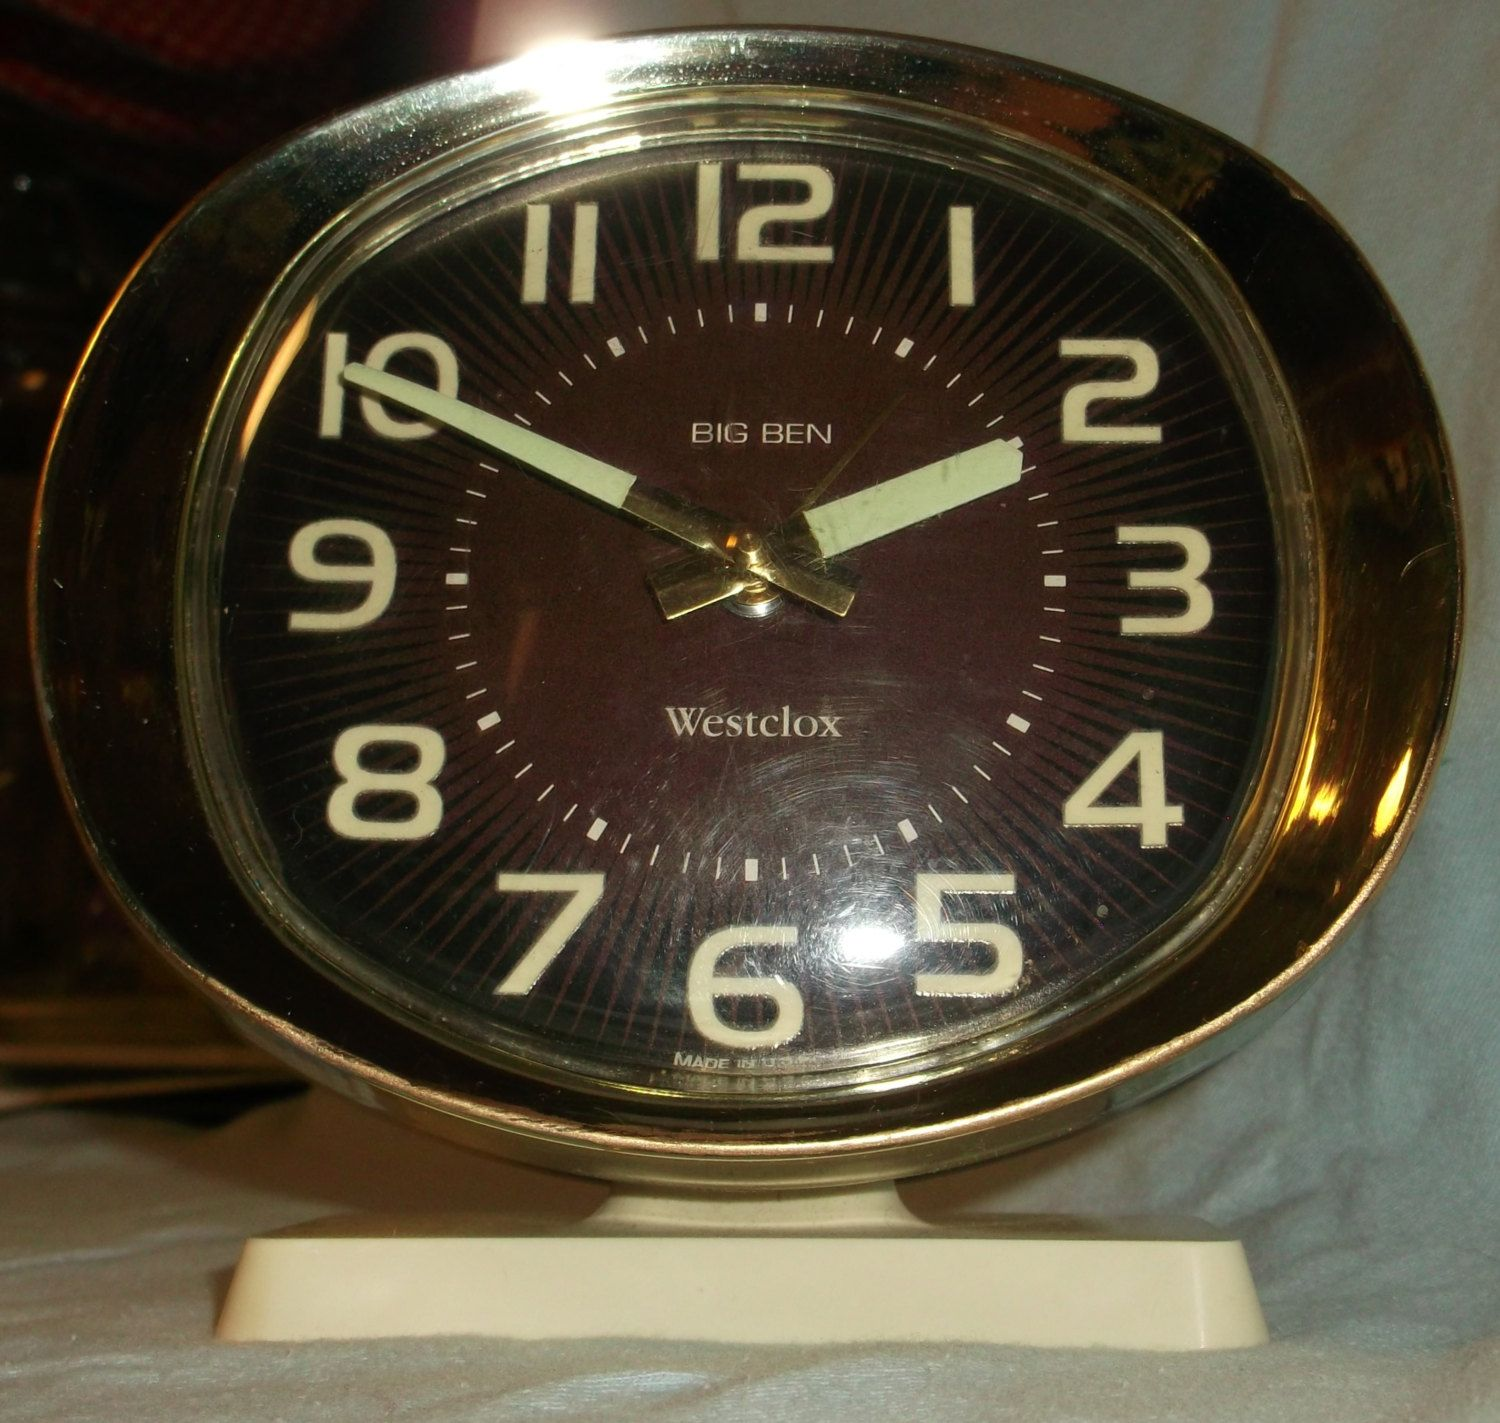 vintage westclox big ben wind up manual alarm clock glow in the dark rh pinterest com Color Color Changing Alarm Clock Atomic Atomic Clock Walmart